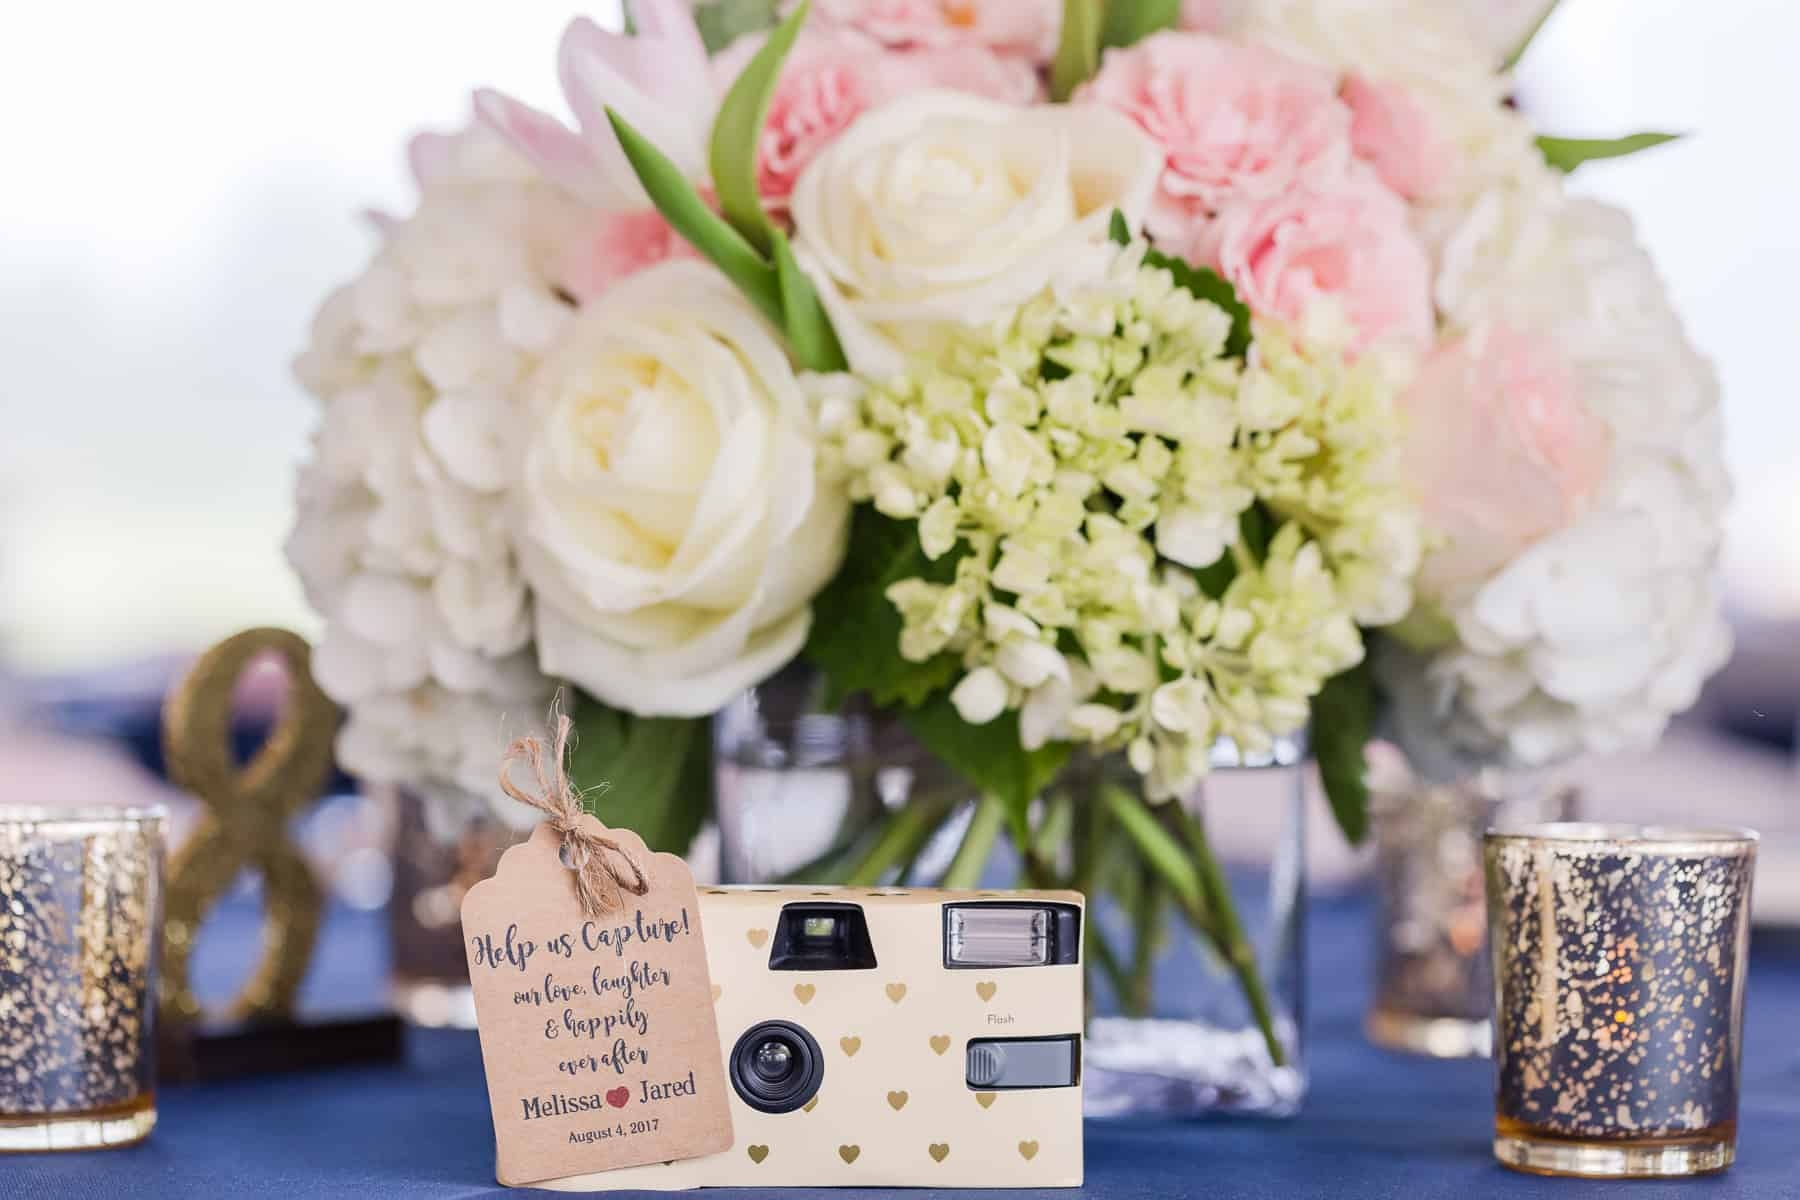 Wedding table bouquet and camera for guests